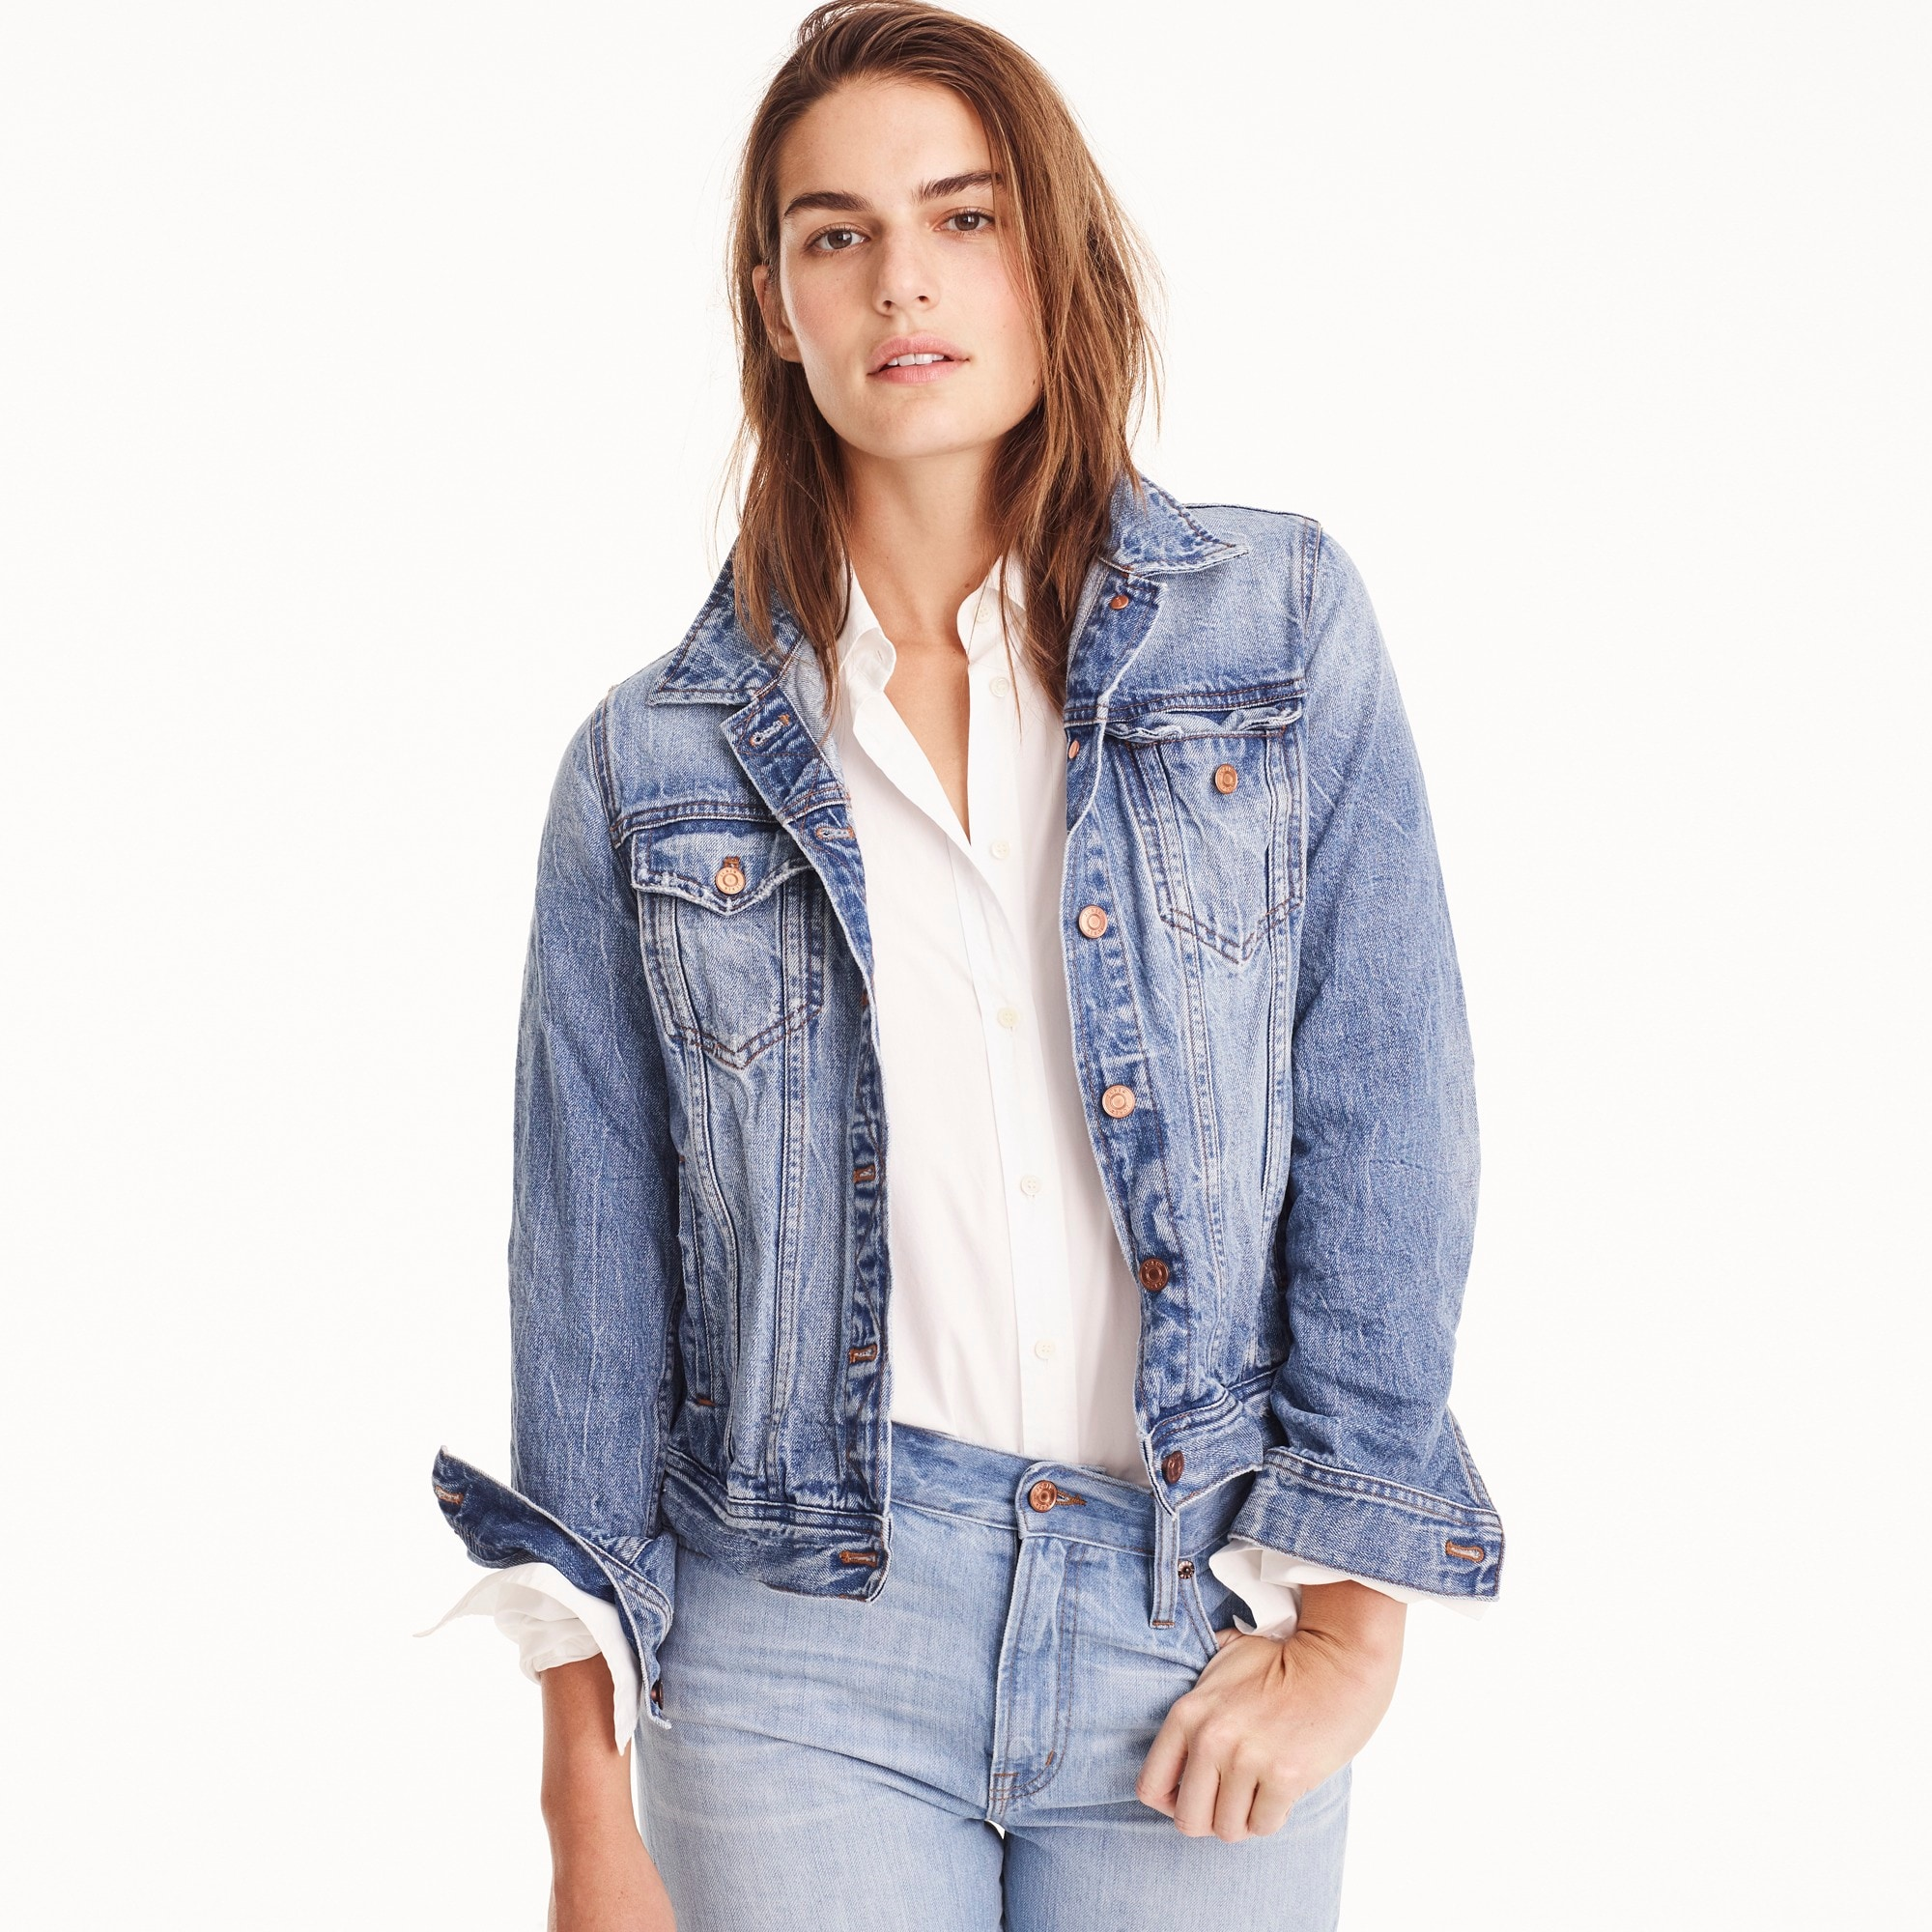 women's petite classic denim jacket - women's outerwear & jackets